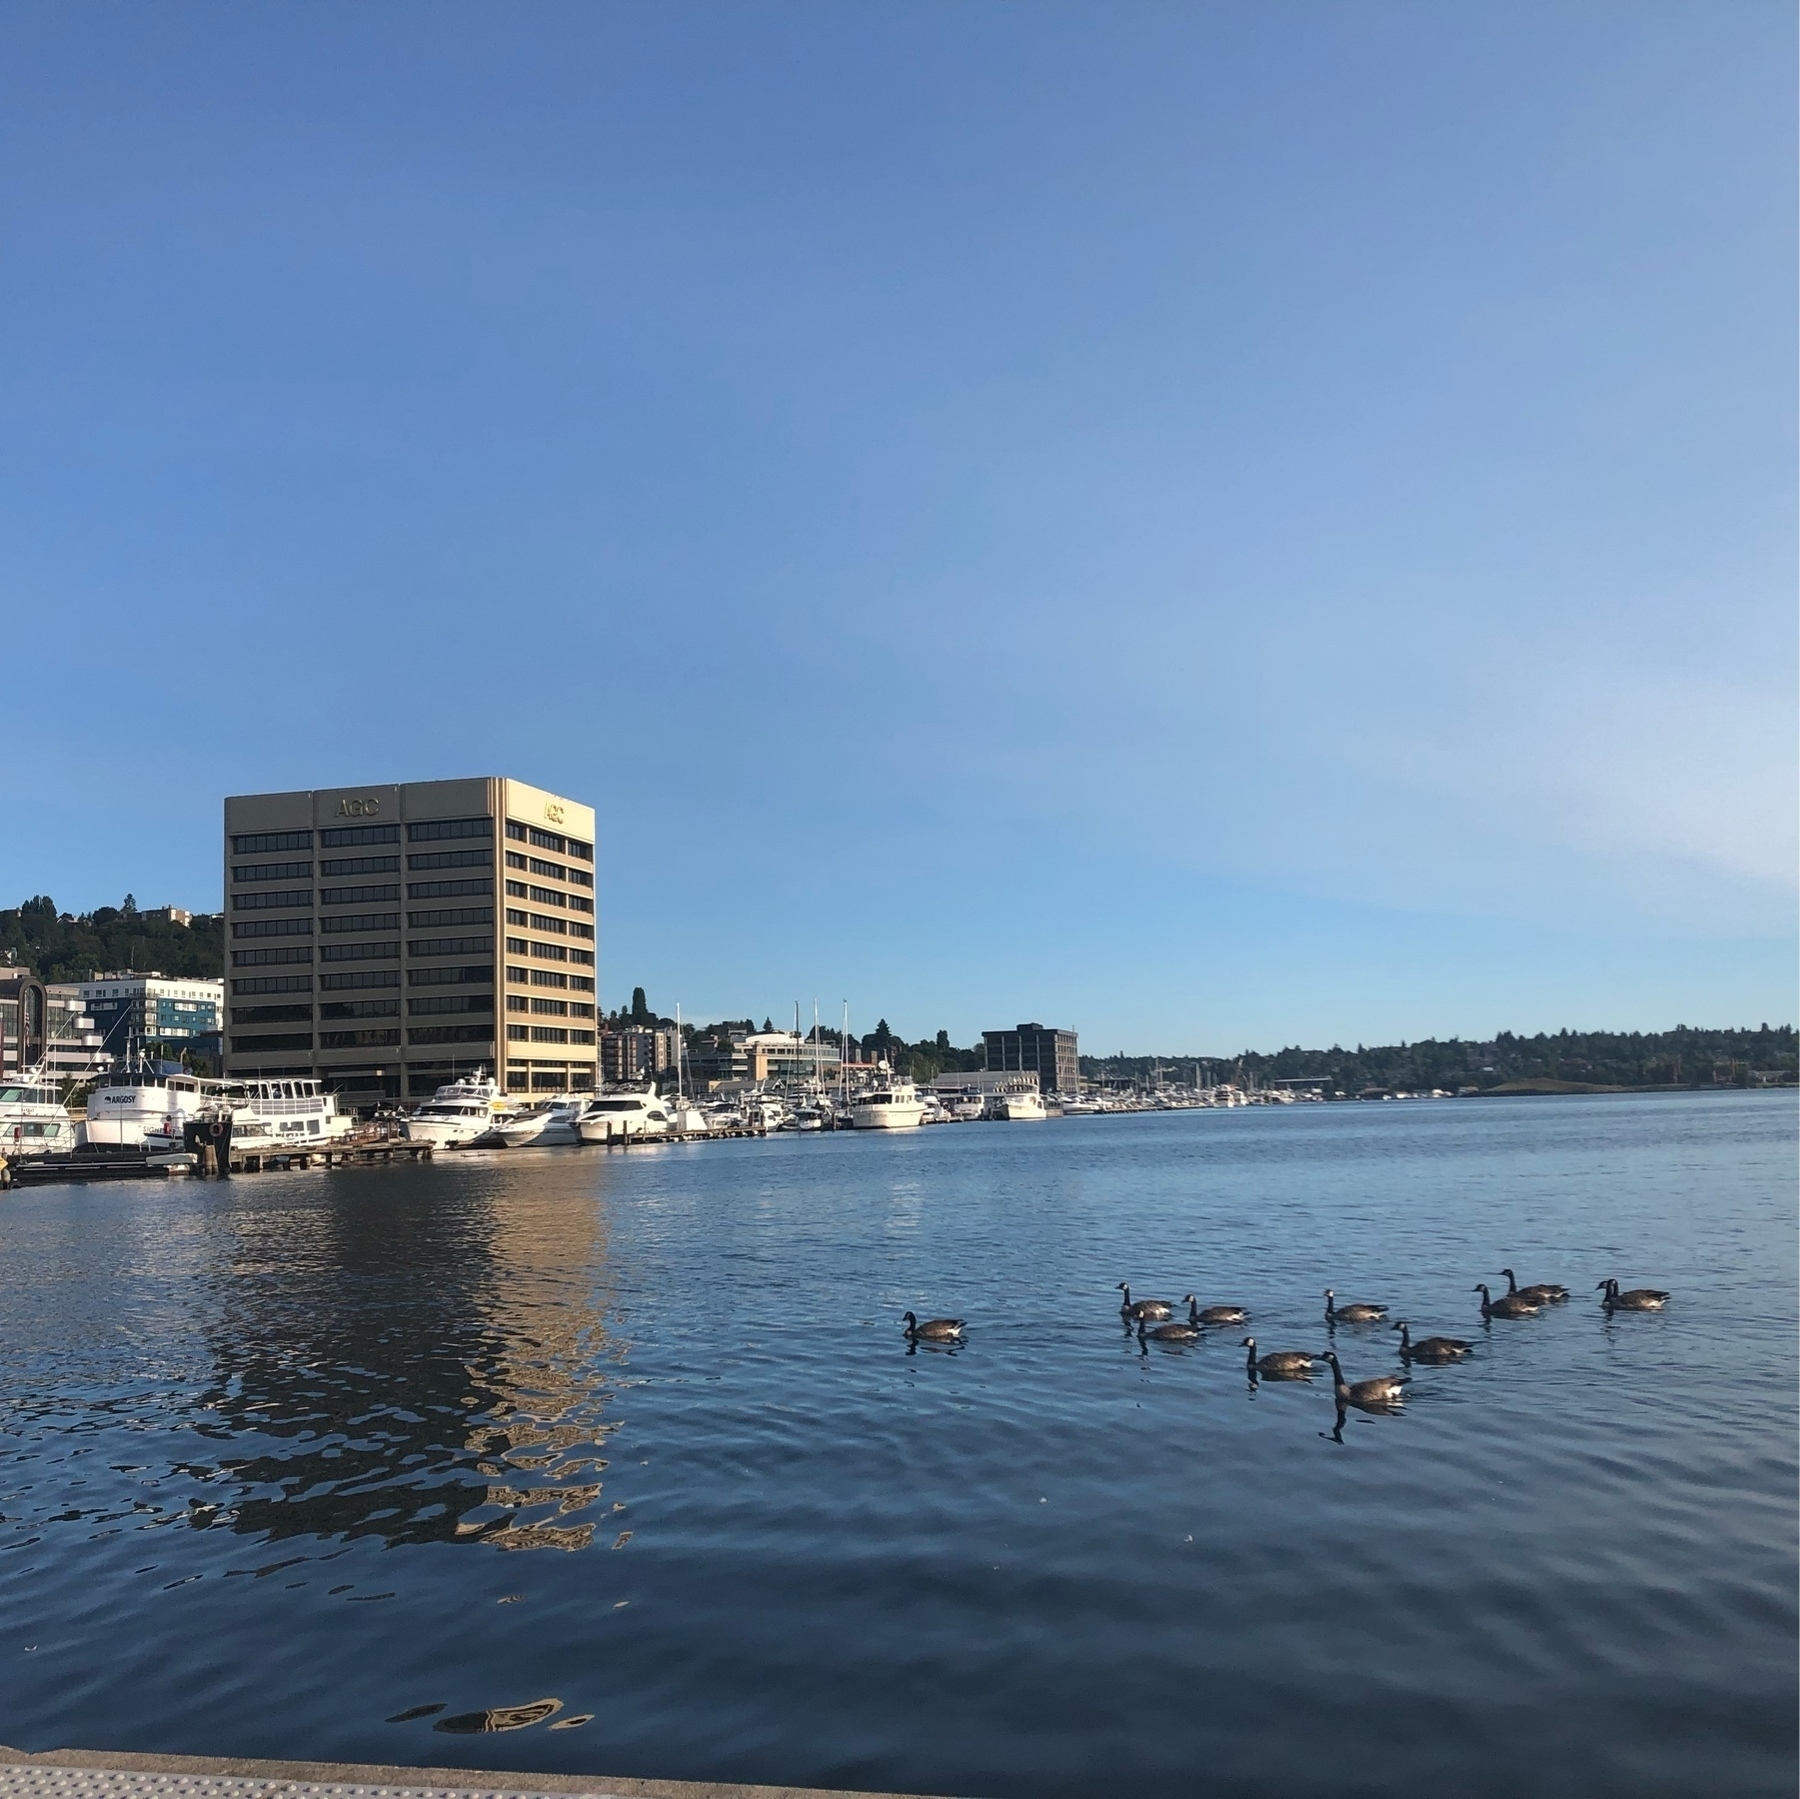 A smooth blue lake hosts a small fllock of Canadian Geese and the mirror reflection of a squat brown bank building. A mellow summer morning with clear skies.